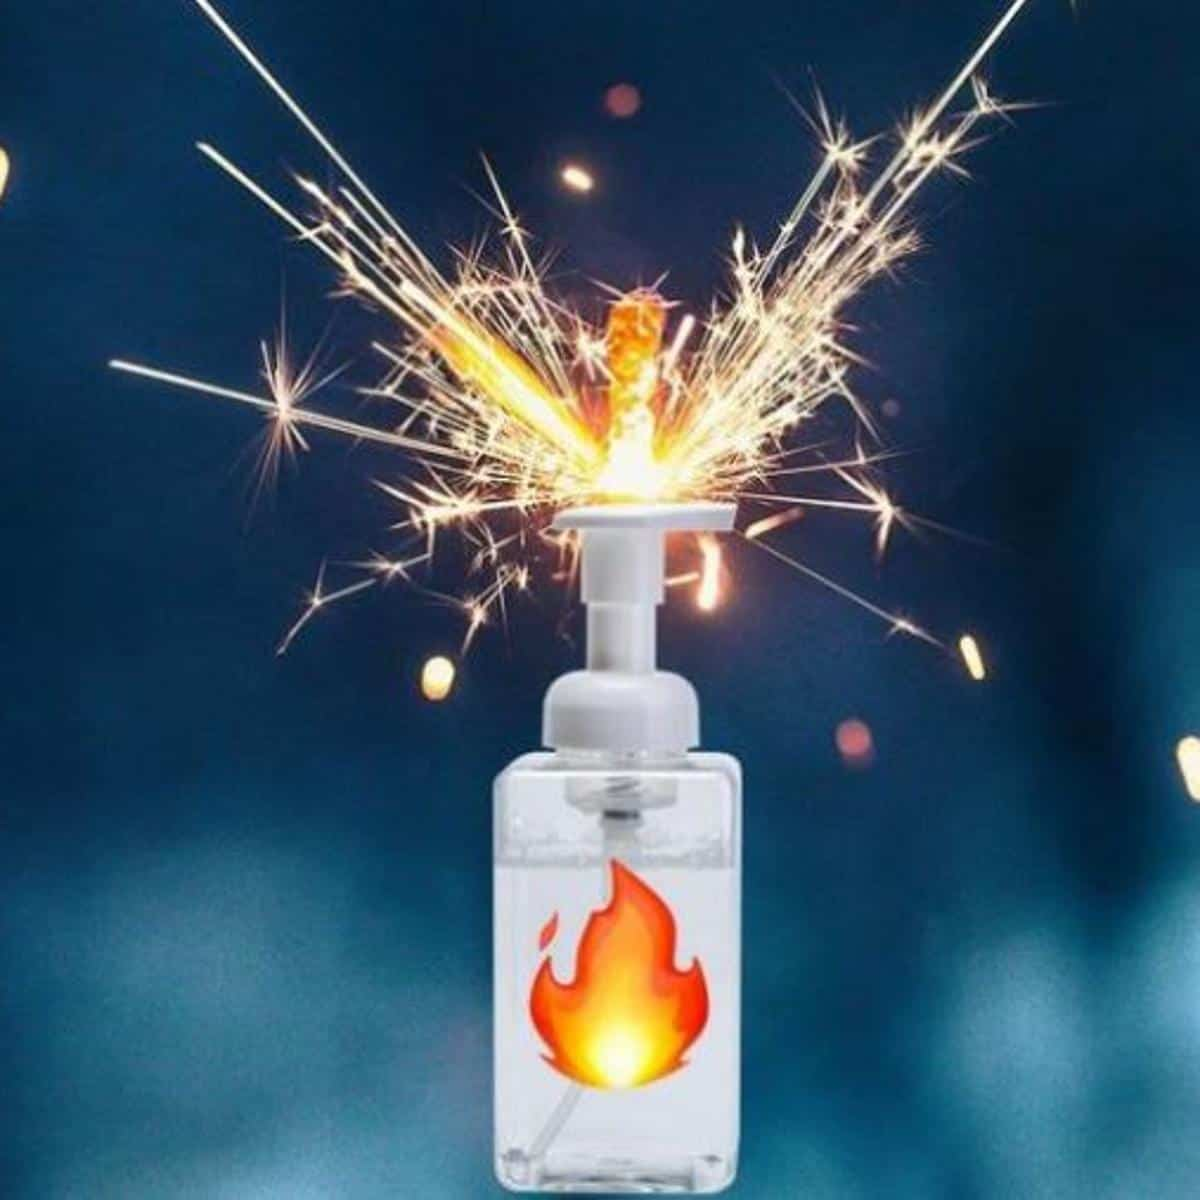 hand sanitizer bottle surrounded by sparks